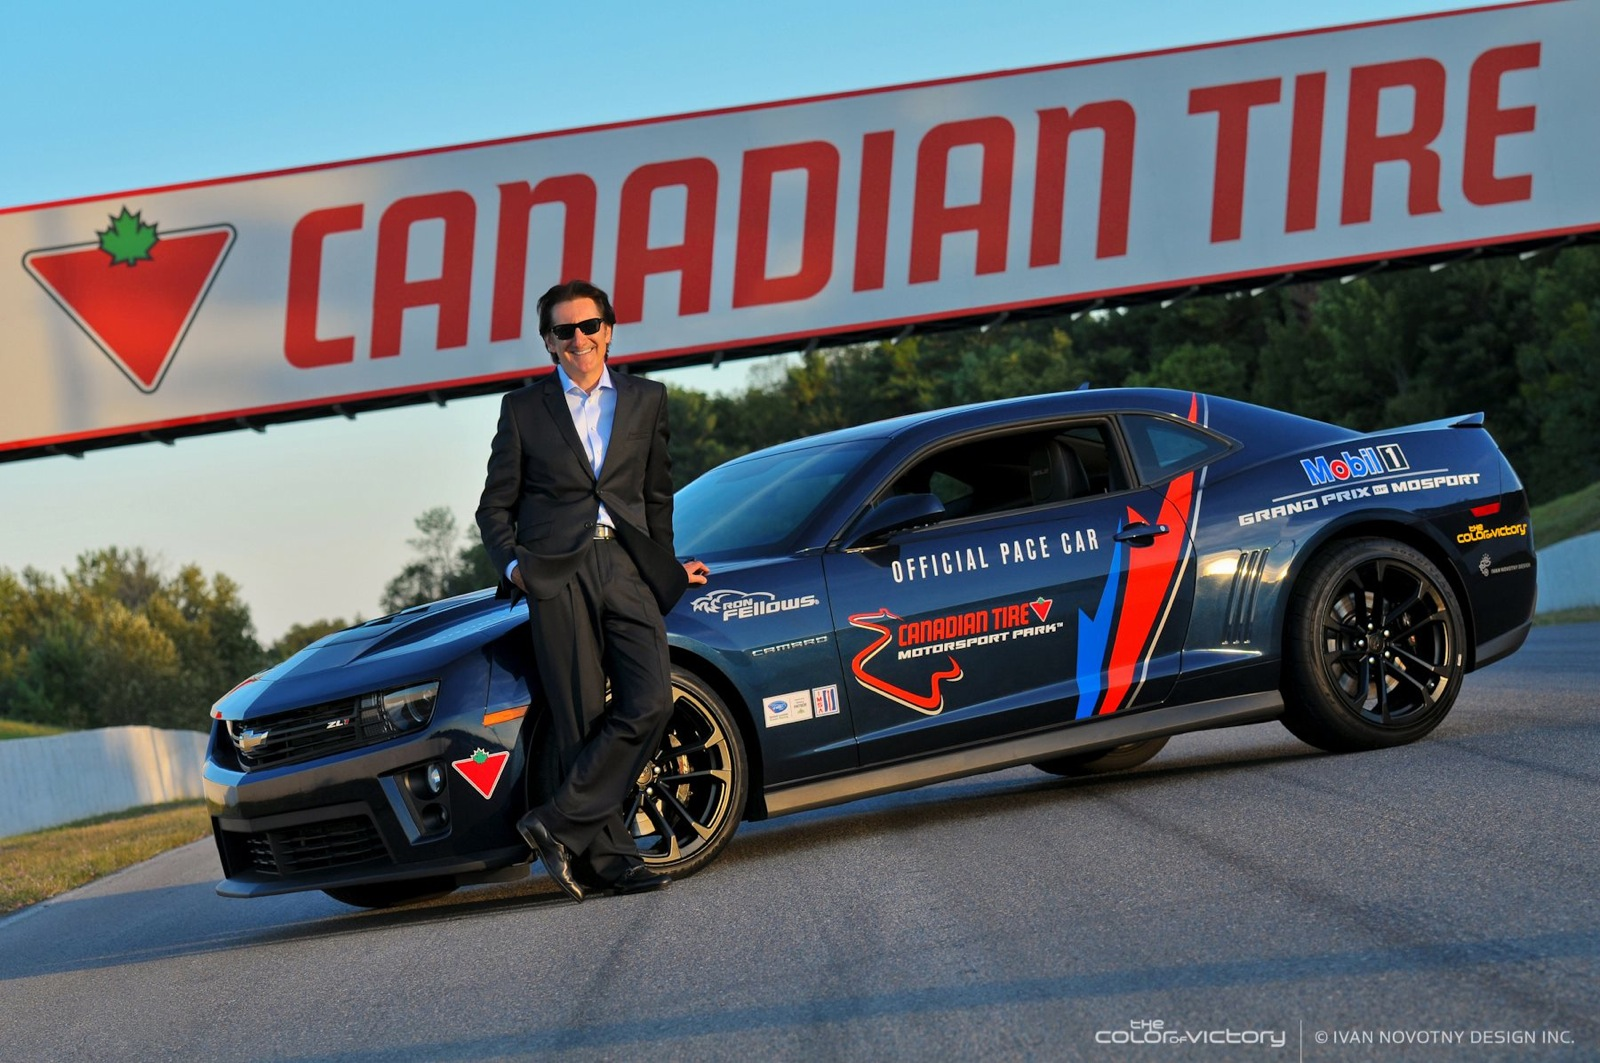 2012 camaro zl1 alms pace car to be auctioned for charity. Black Bedroom Furniture Sets. Home Design Ideas